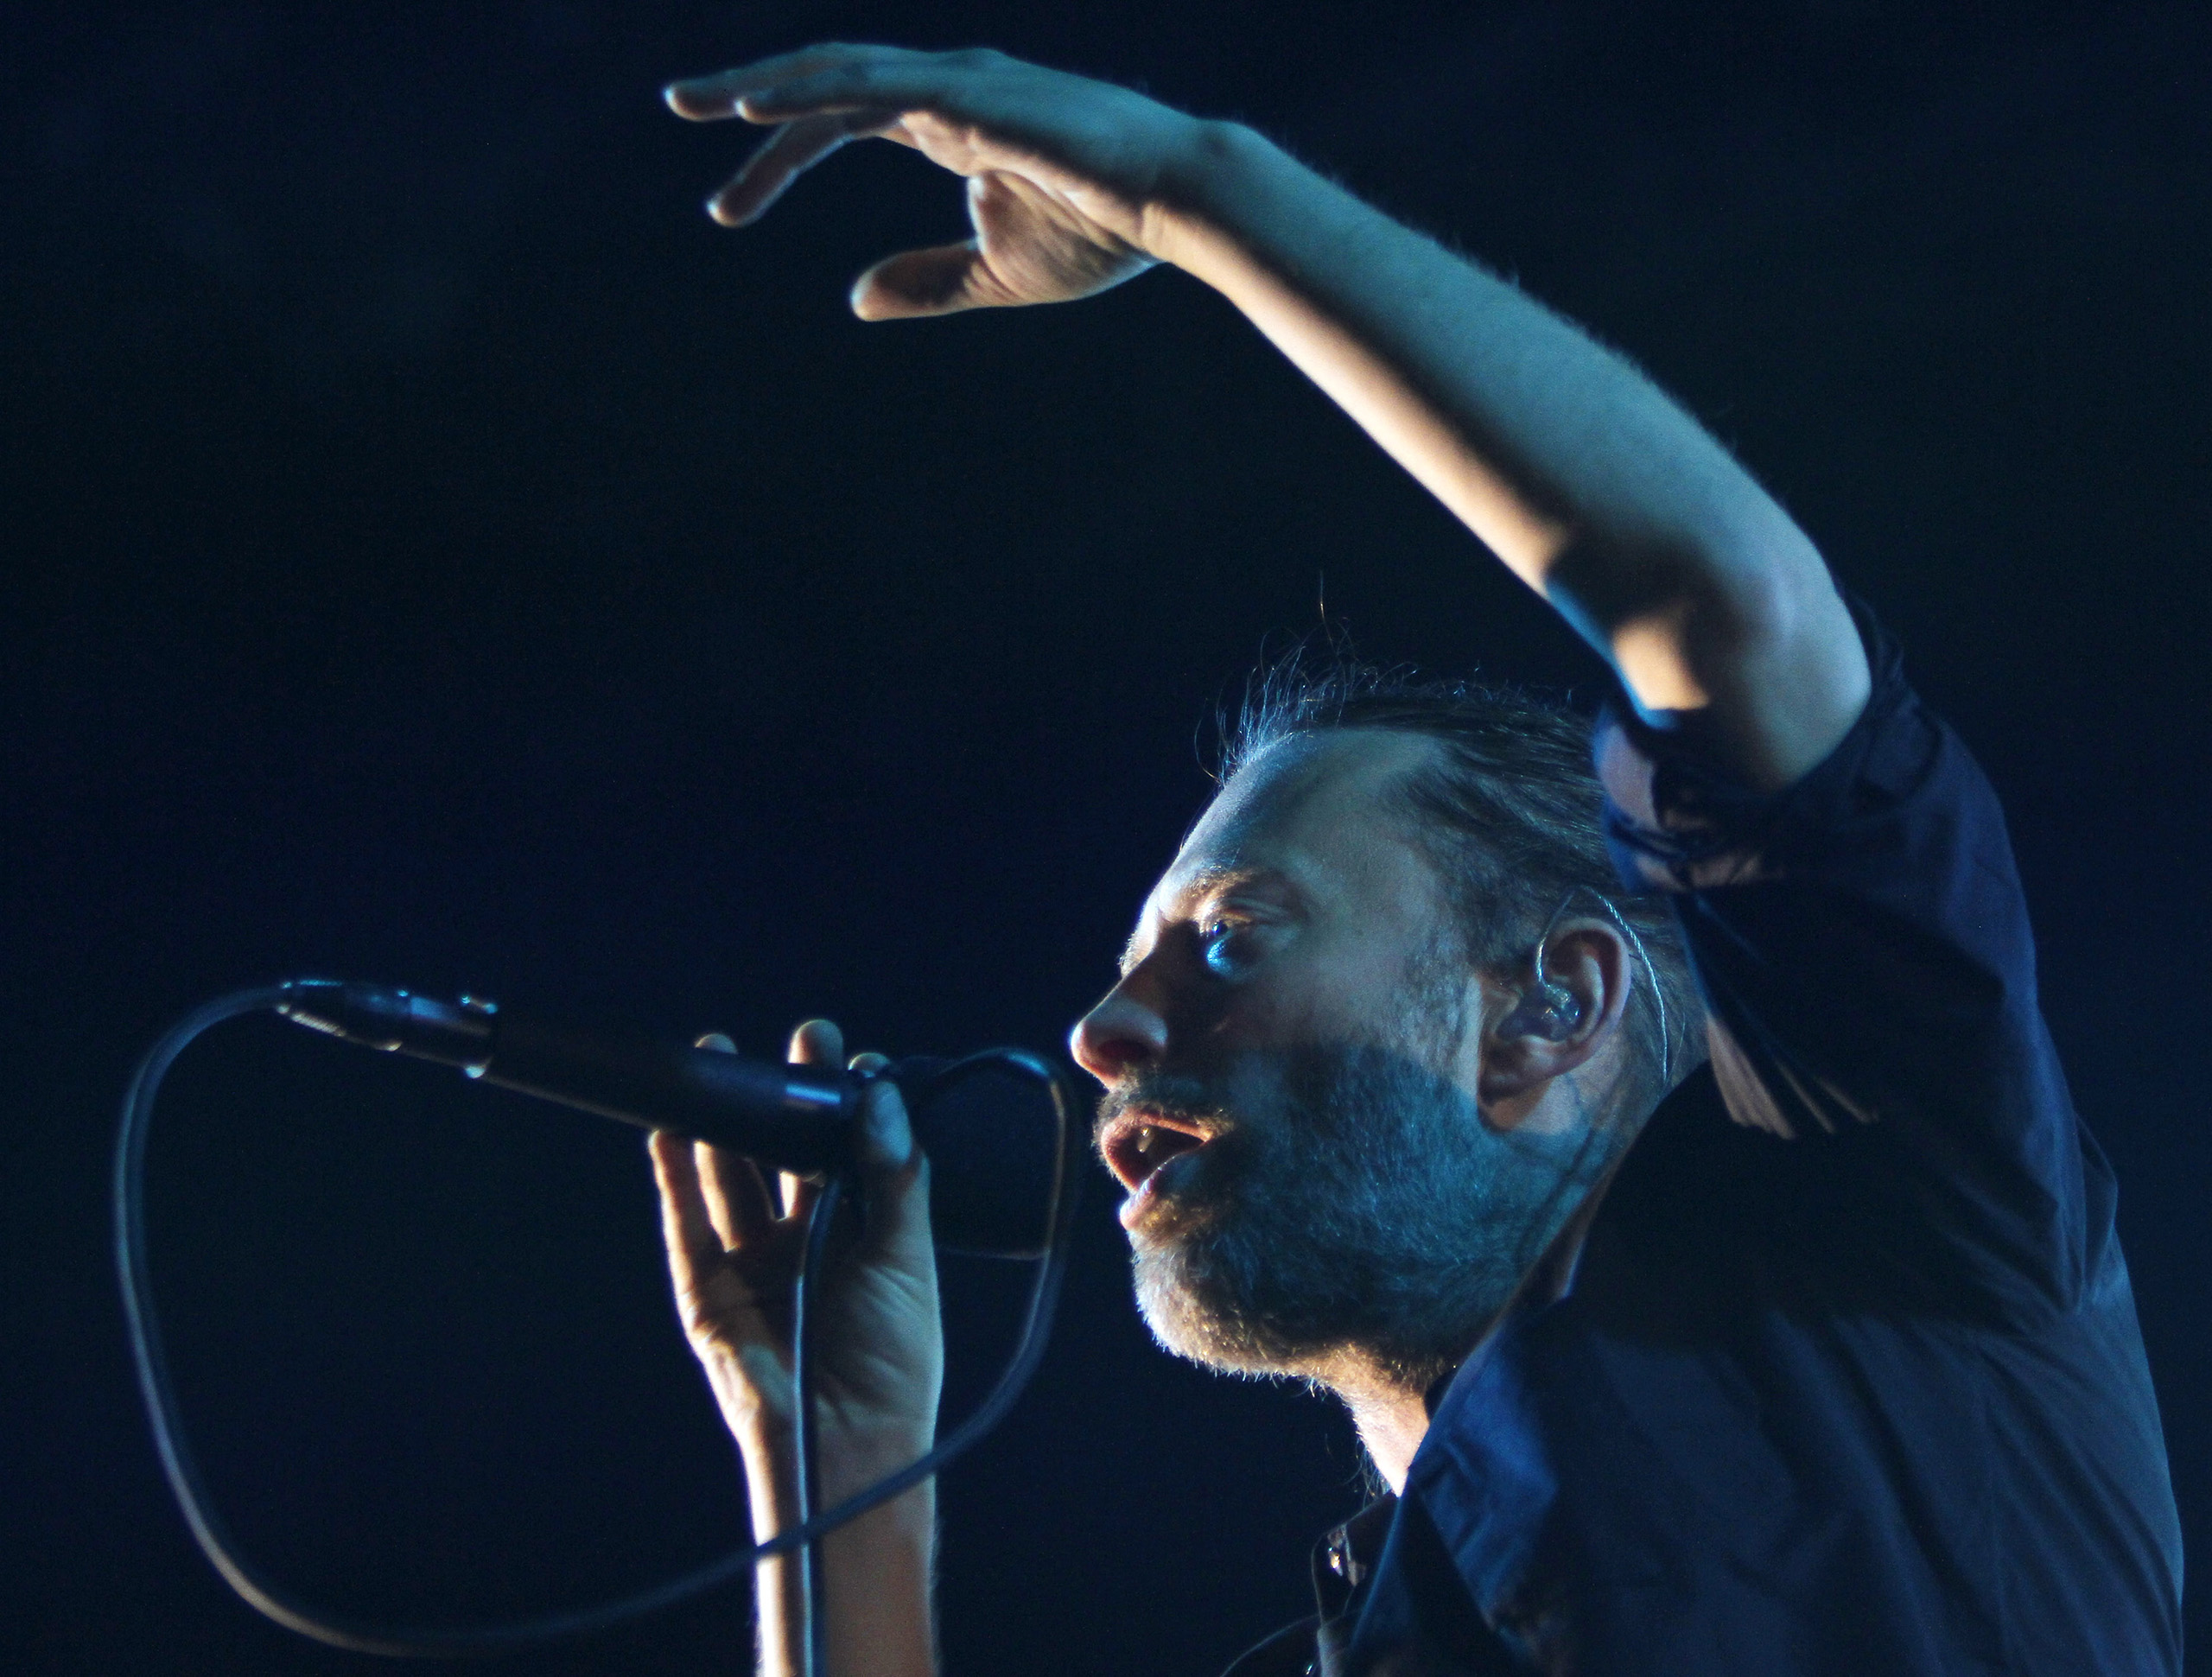 Thom Yorke of British band Radiohead performs at the Optimus Alive Festival in Alges, on the outskirts of Lisbon July 15, 2012.